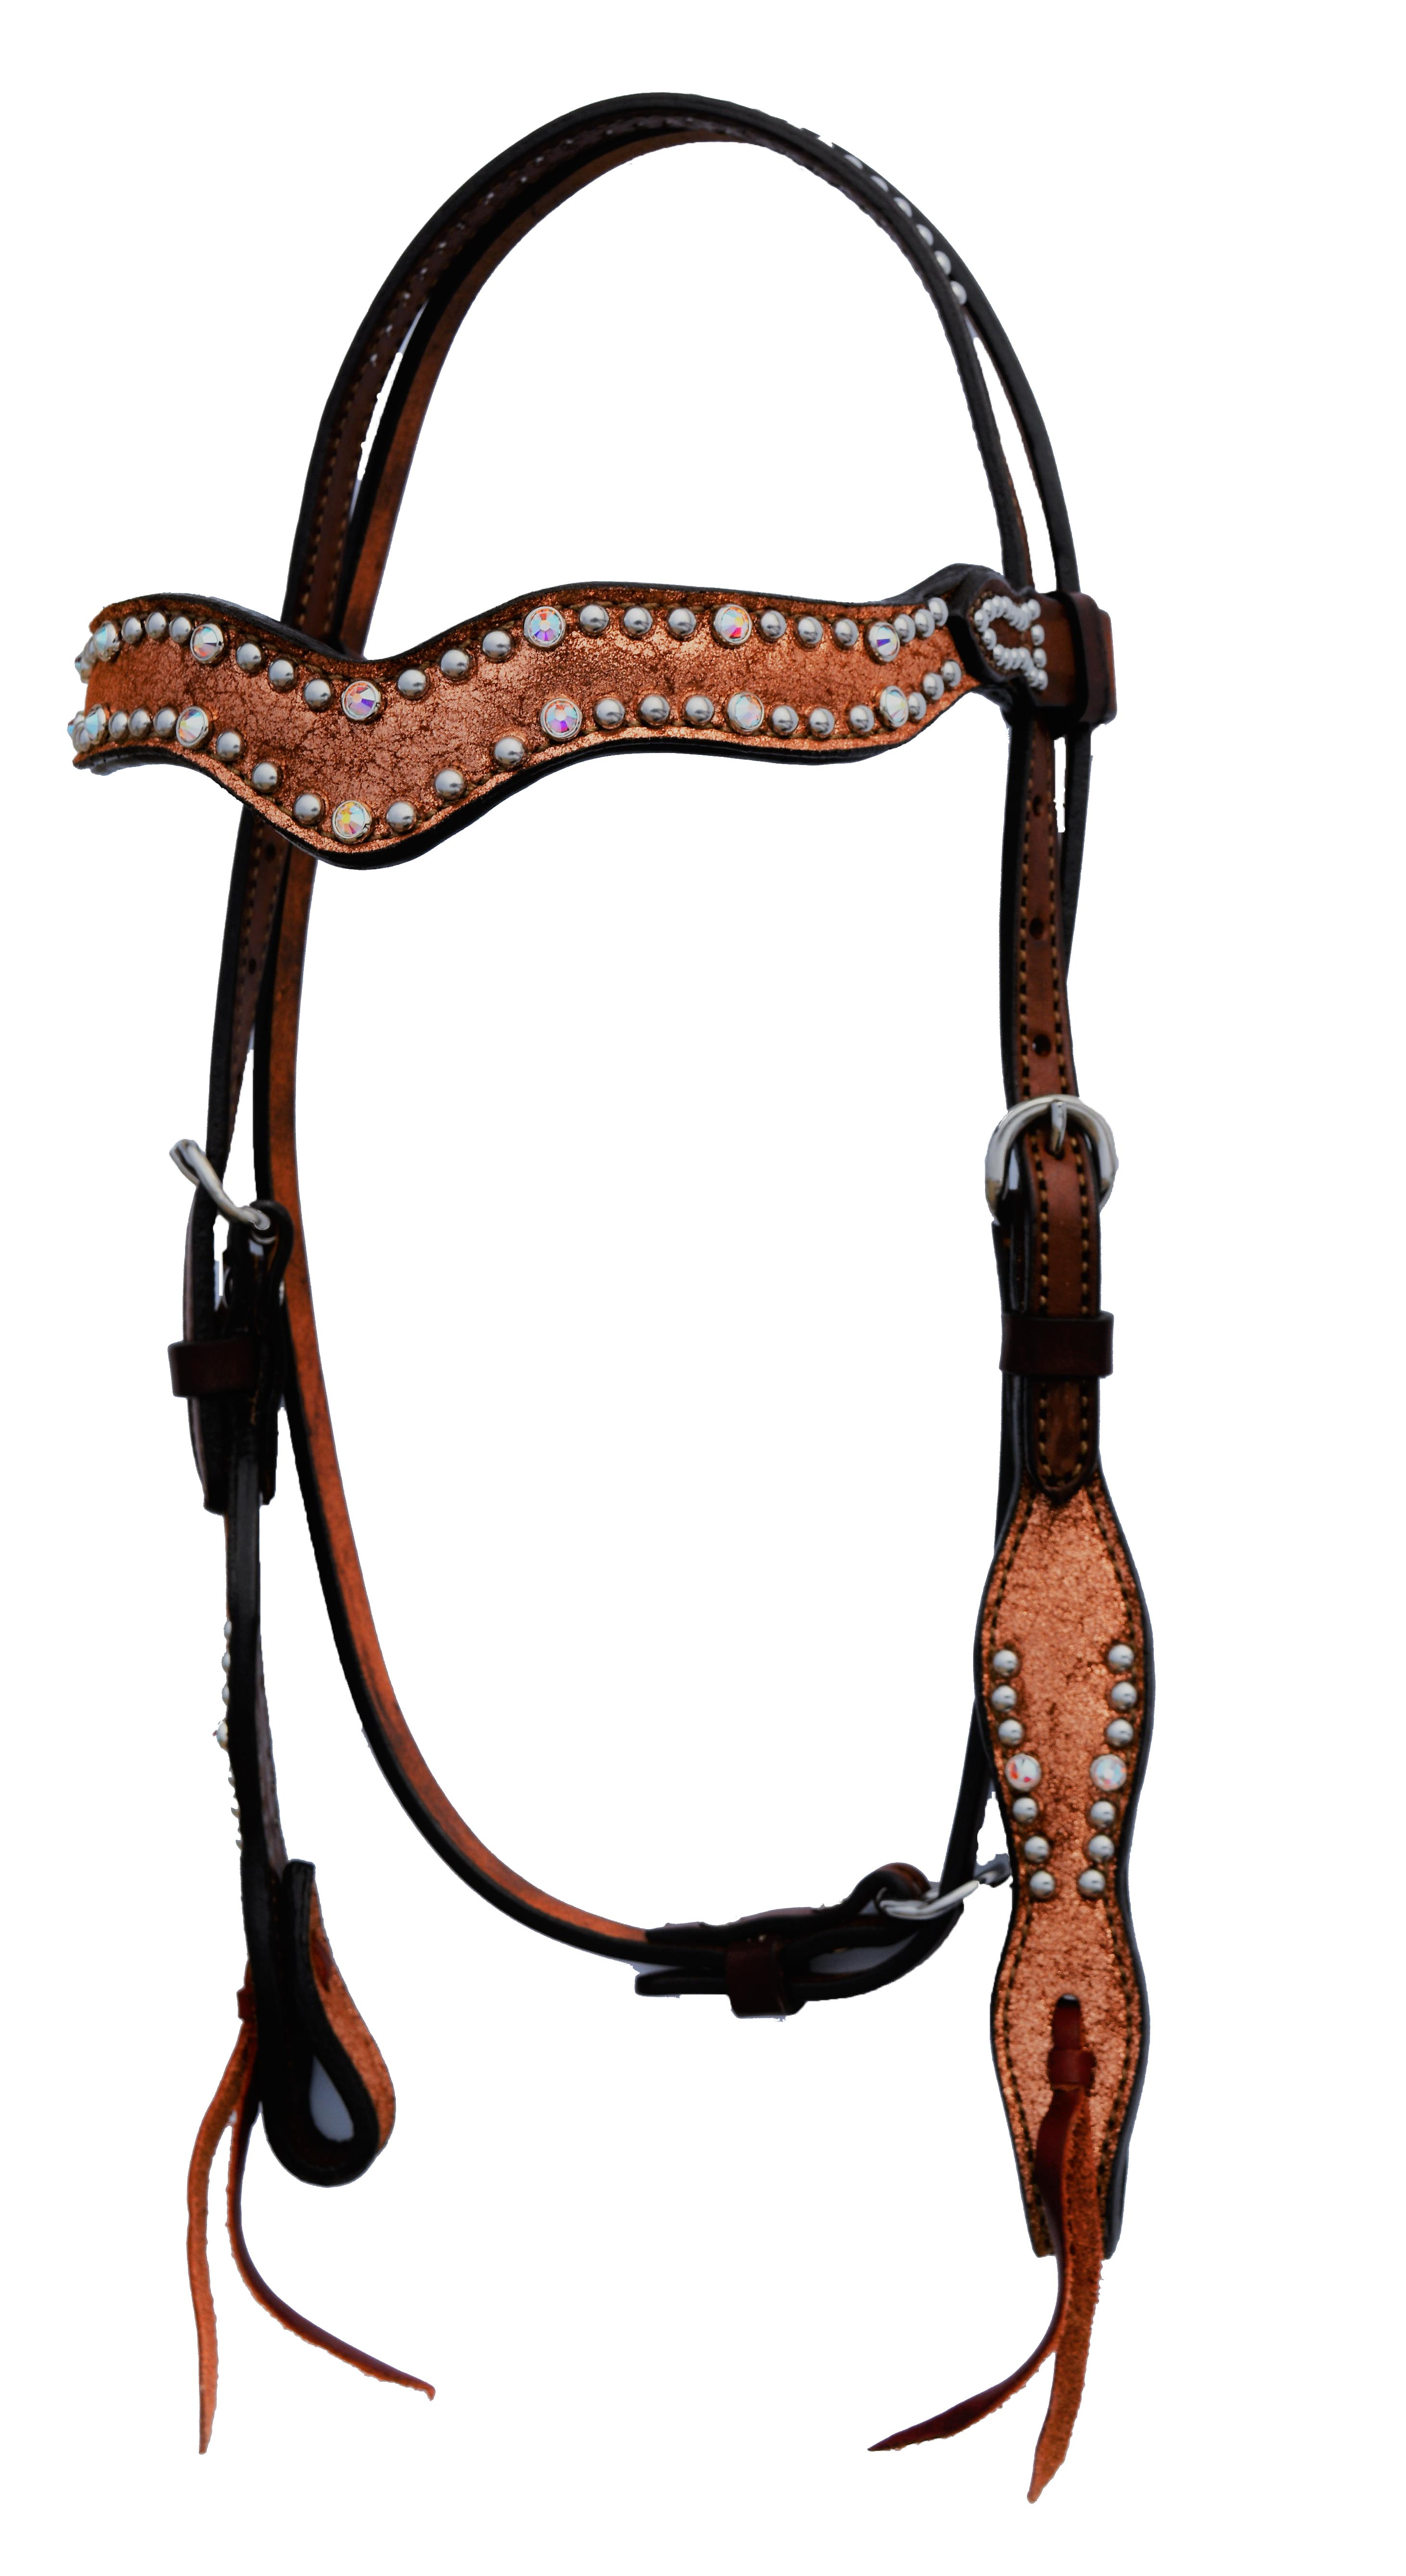 2117-JC WAVE STYLE HEADSTALL WITH COPPER CRACKLE OVERLAY